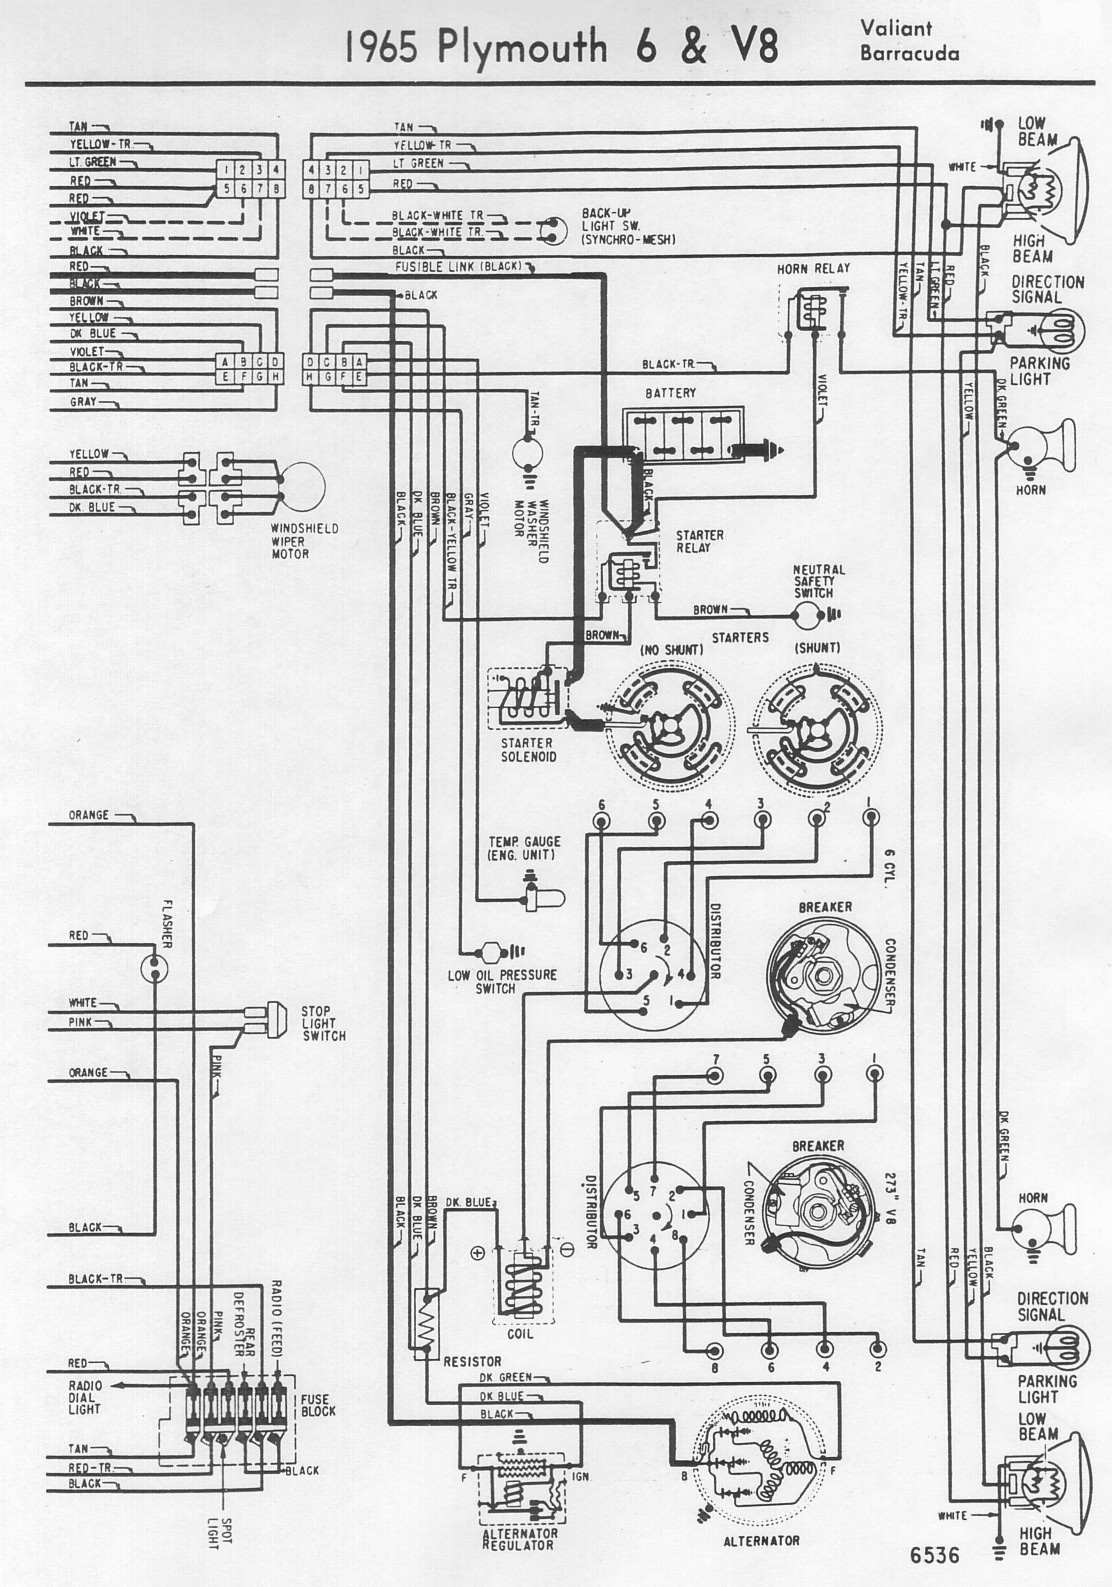 fuel gauge wiring diagram fuel discover your wiring diagram 1965 plymouth valiant or barracuda vw vdo tach wiring diagram